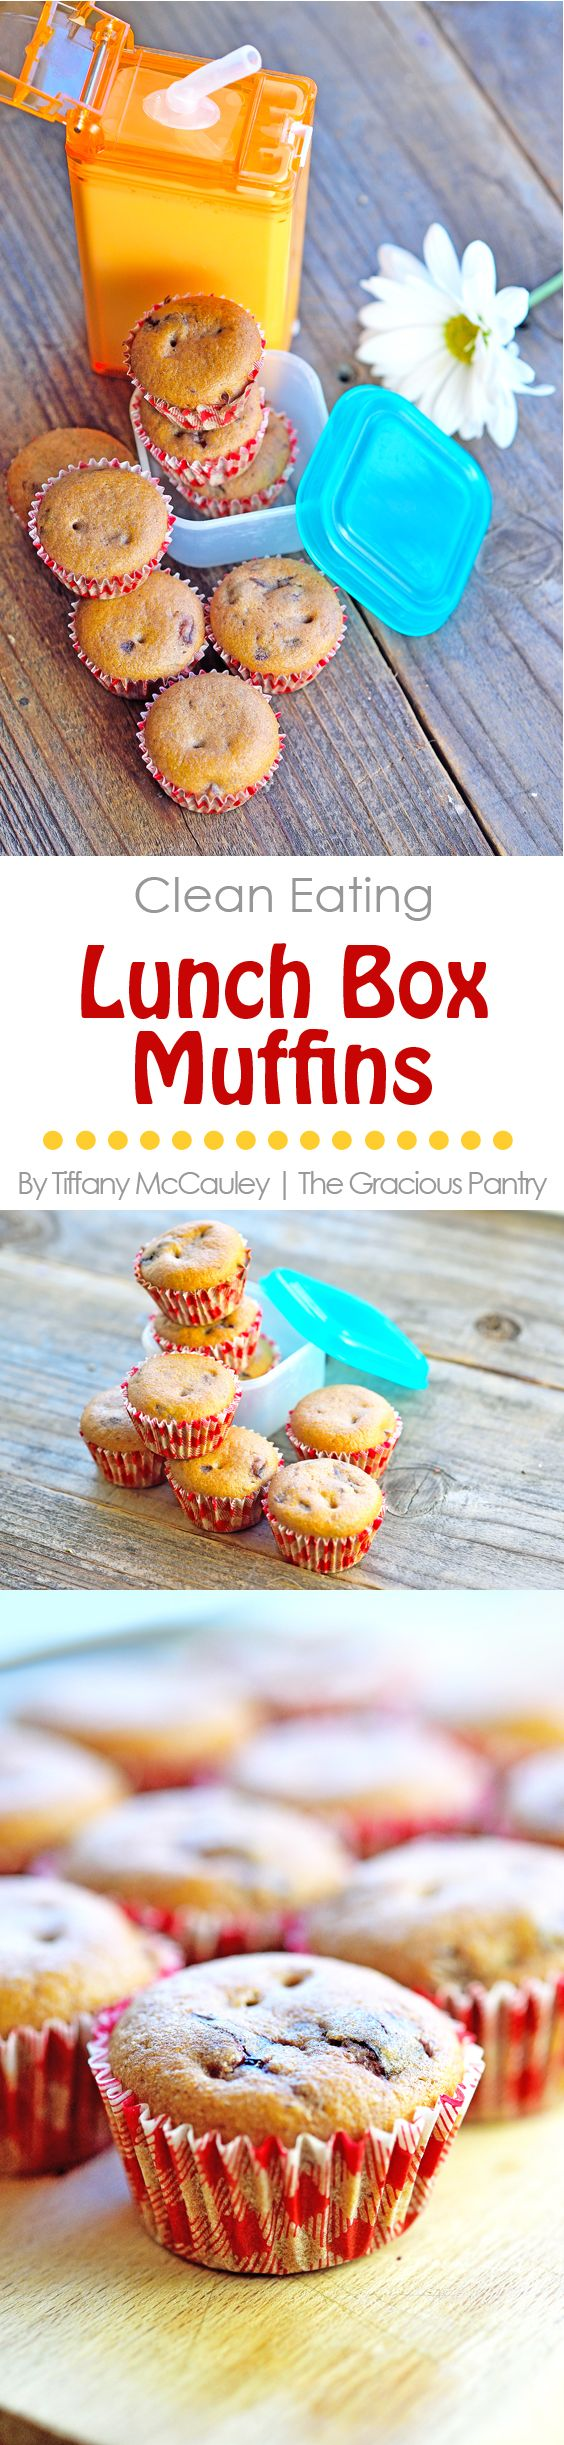 These wonderful little lunch box sized snack muffins are the perfect treat for back to school!  ~ www.TheGraciousPantry.com